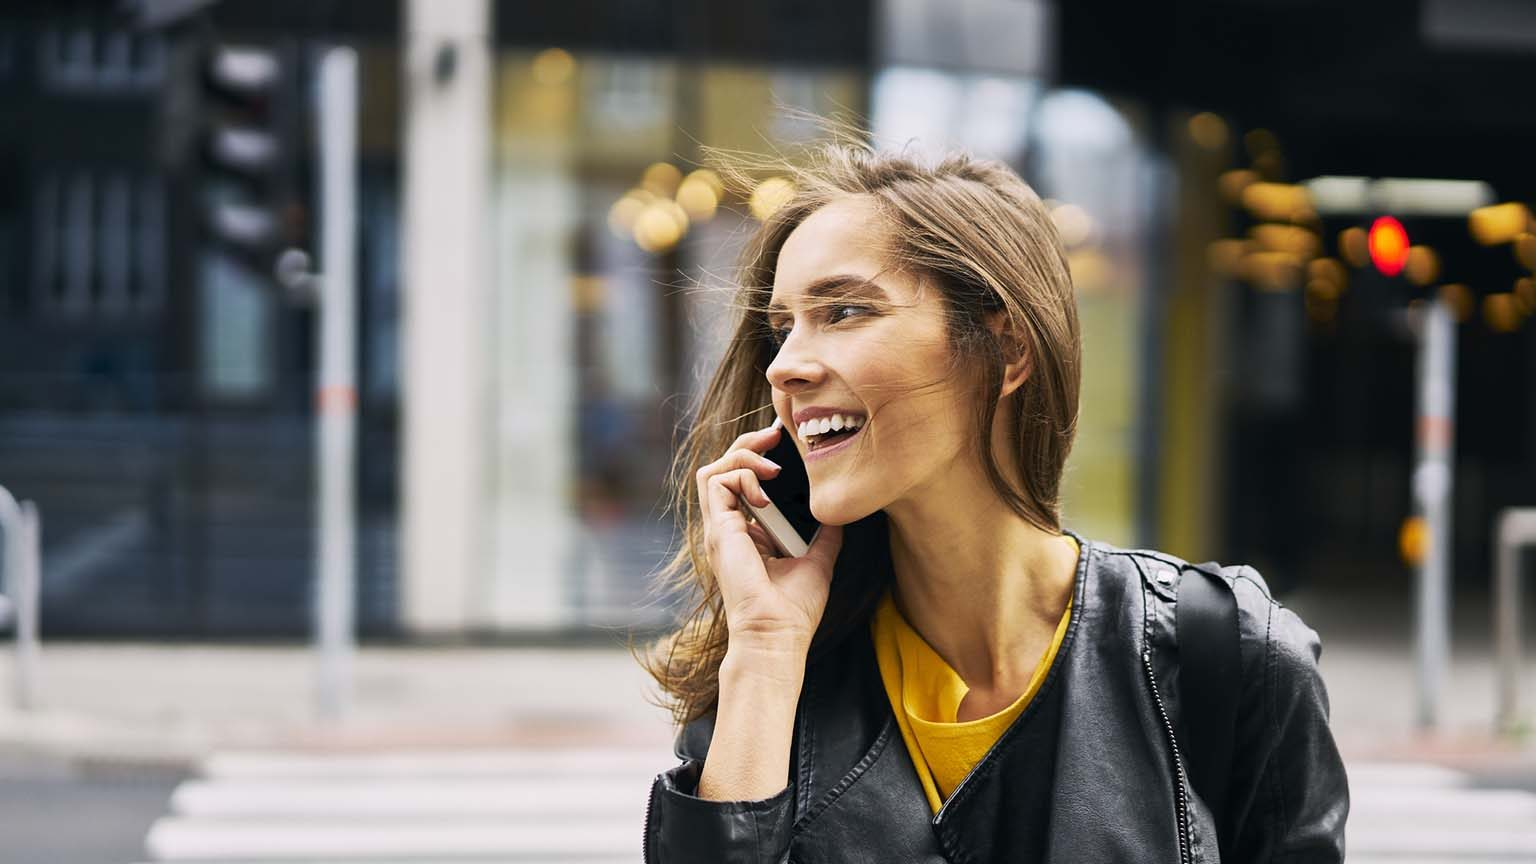 Woman happy on phone